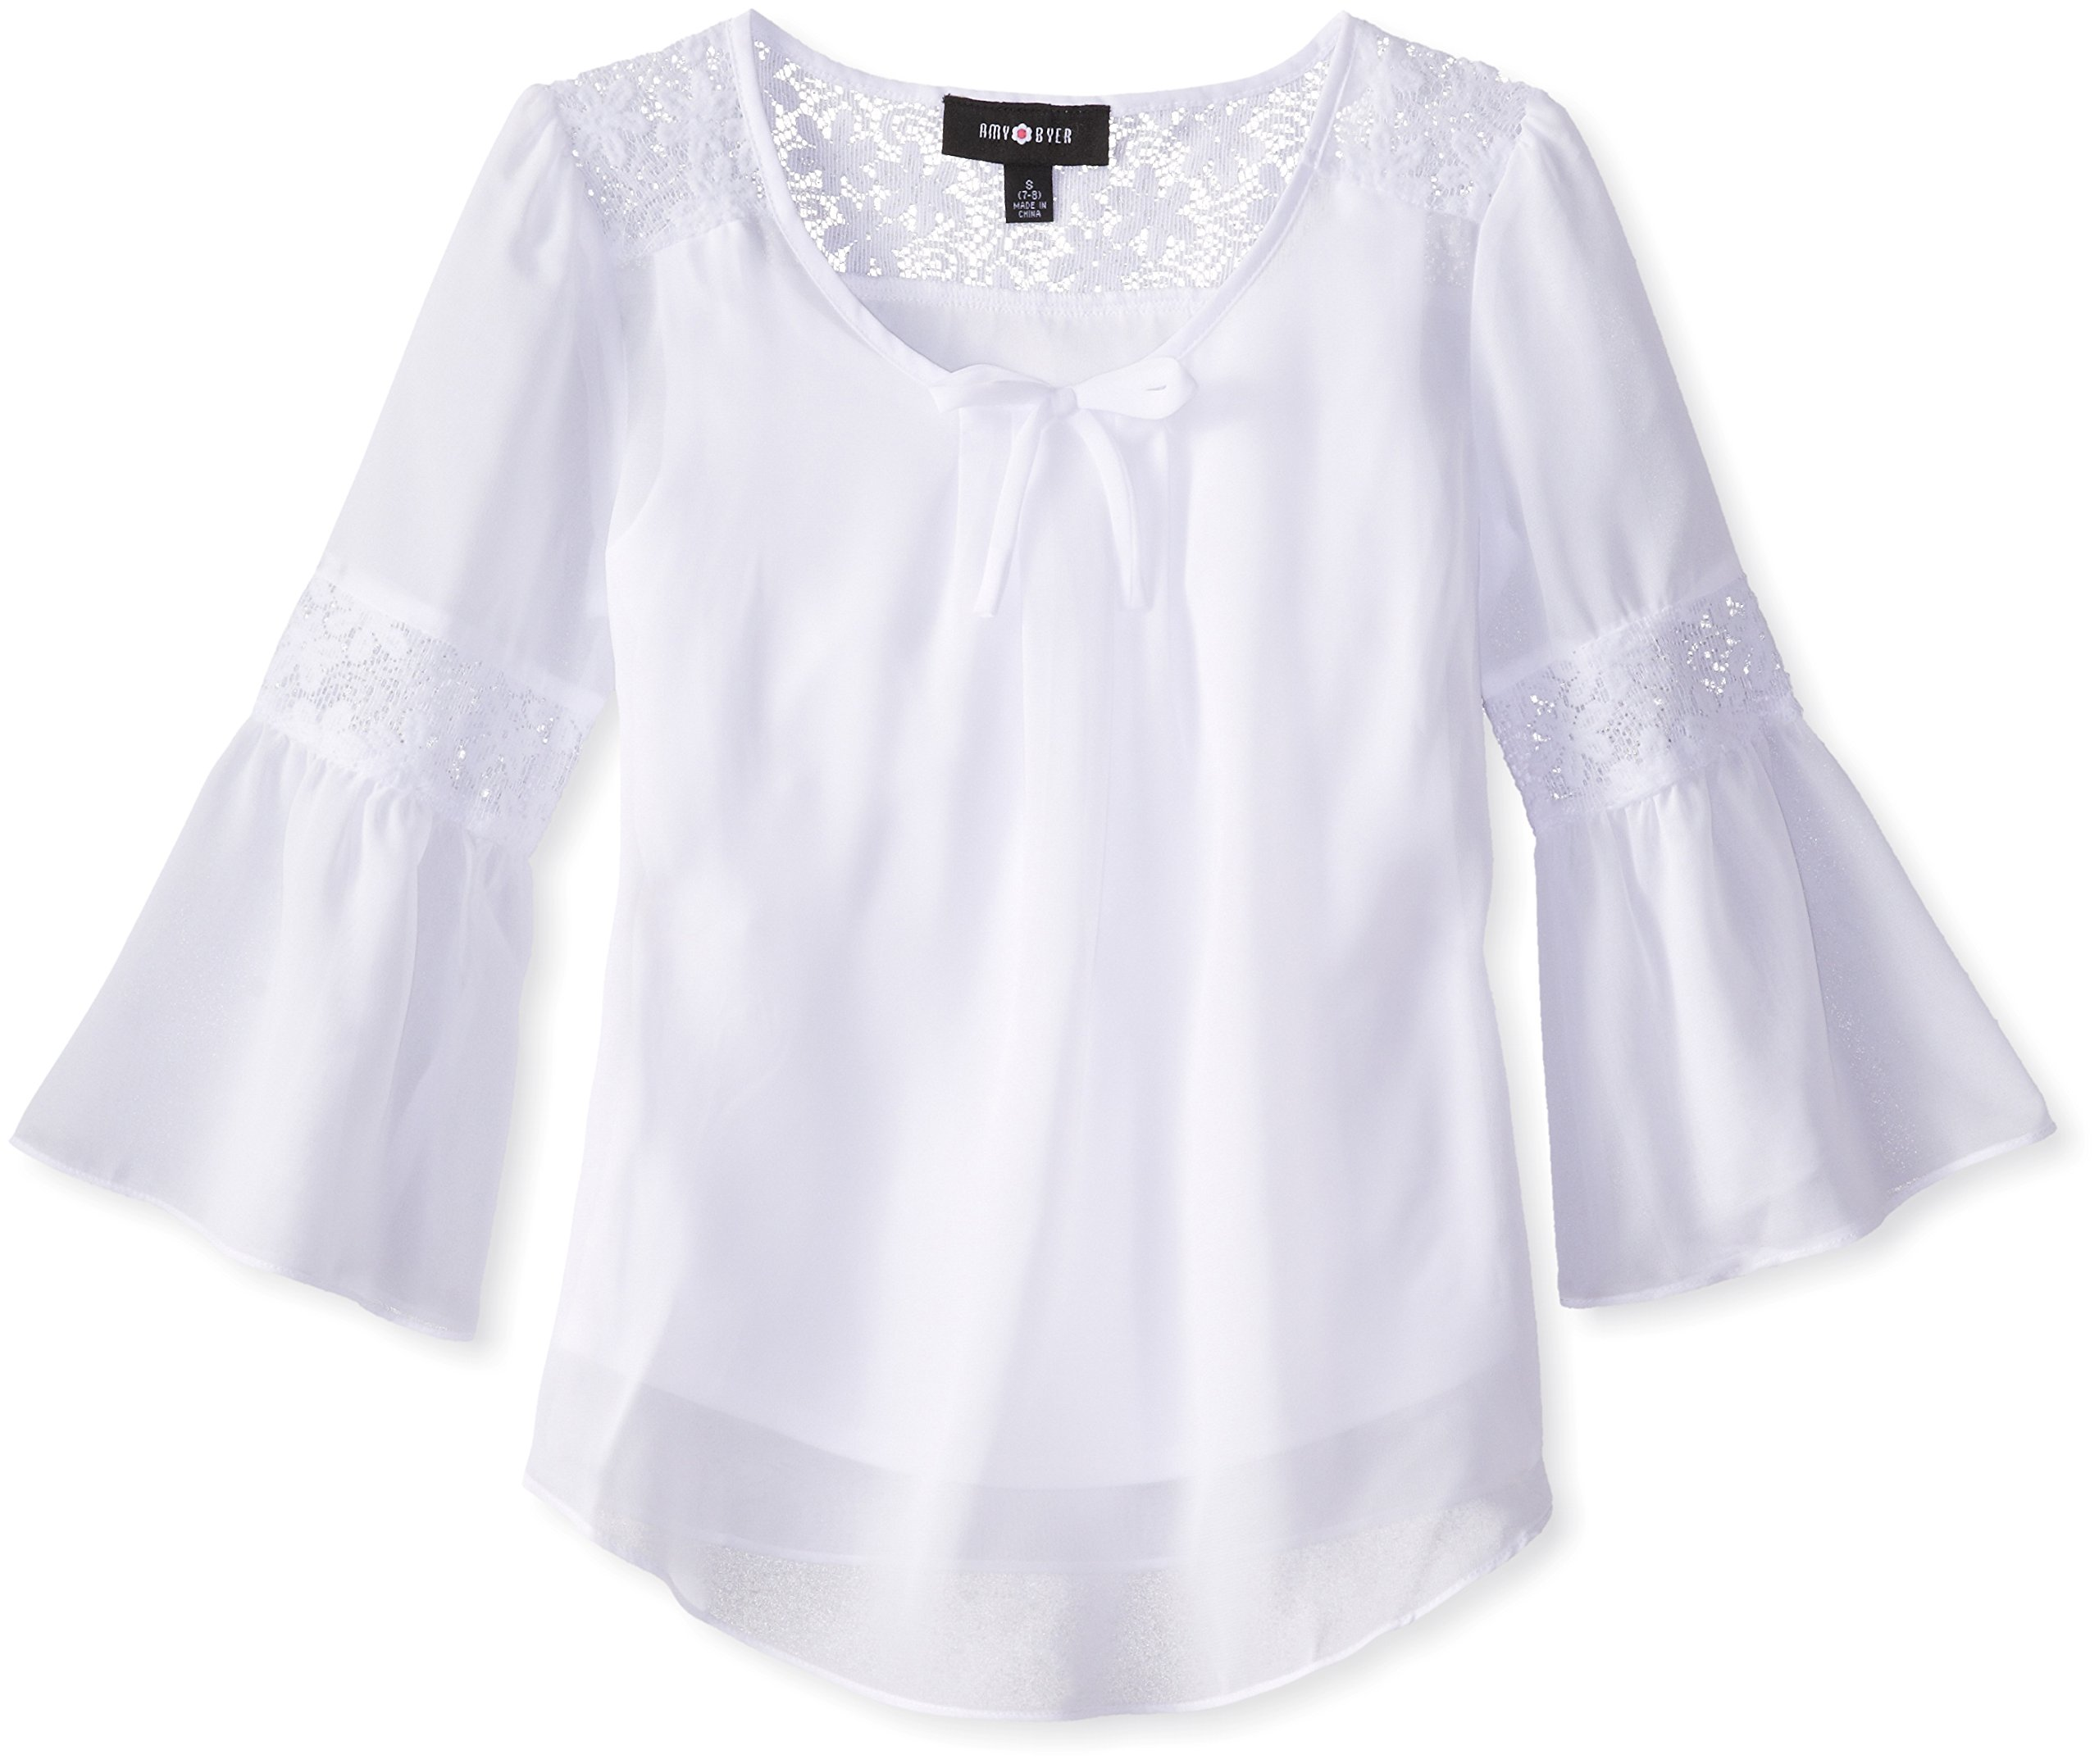 Girls' Bell Sleeve Top with Lace Inset